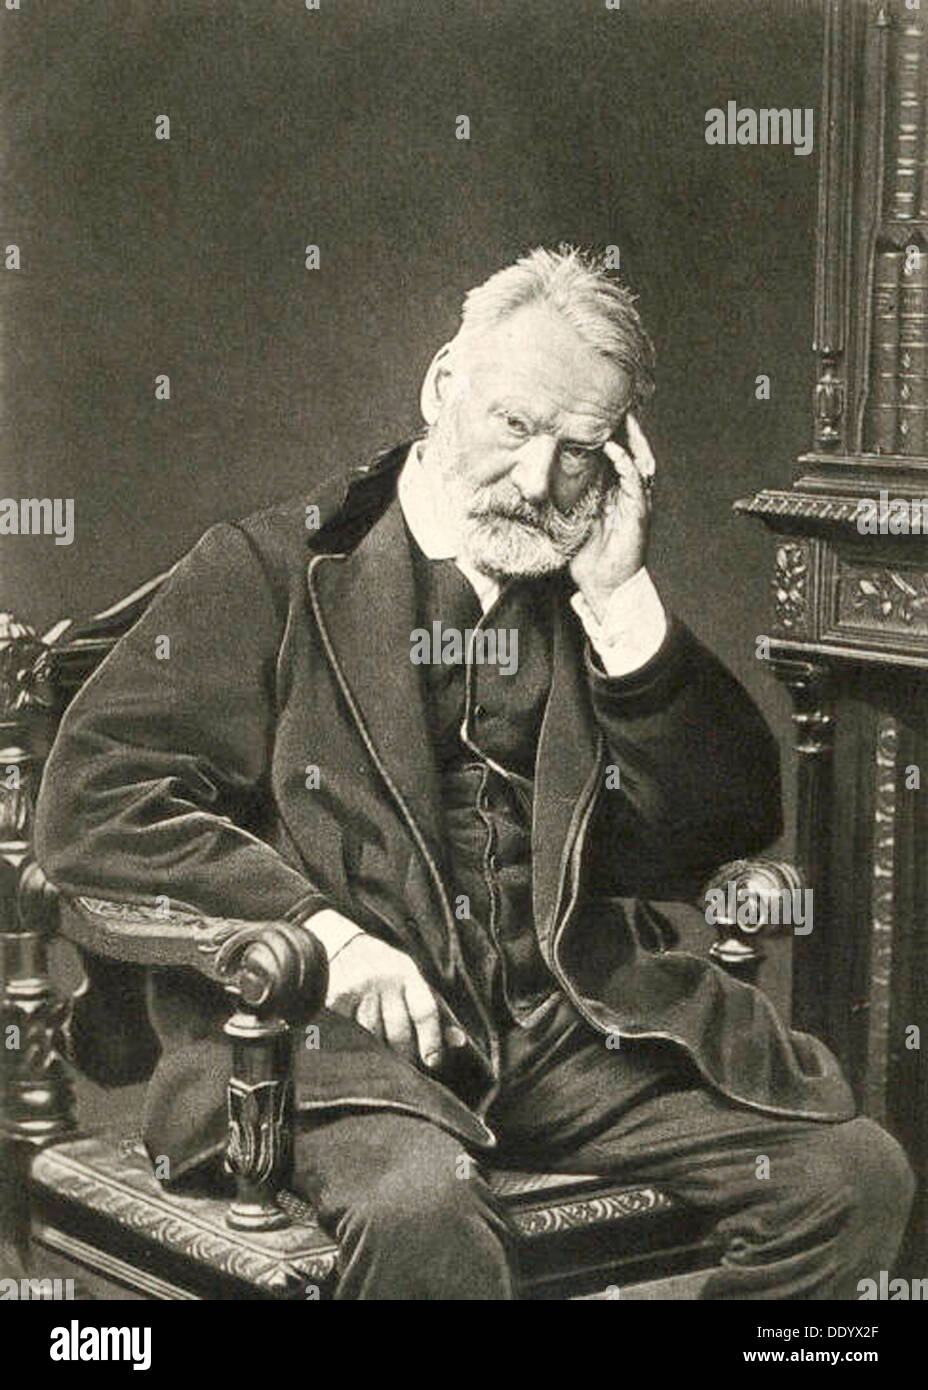 Victor Hugo, French author, 1879. Artist: Count Stanislaw Walery - Stock Image